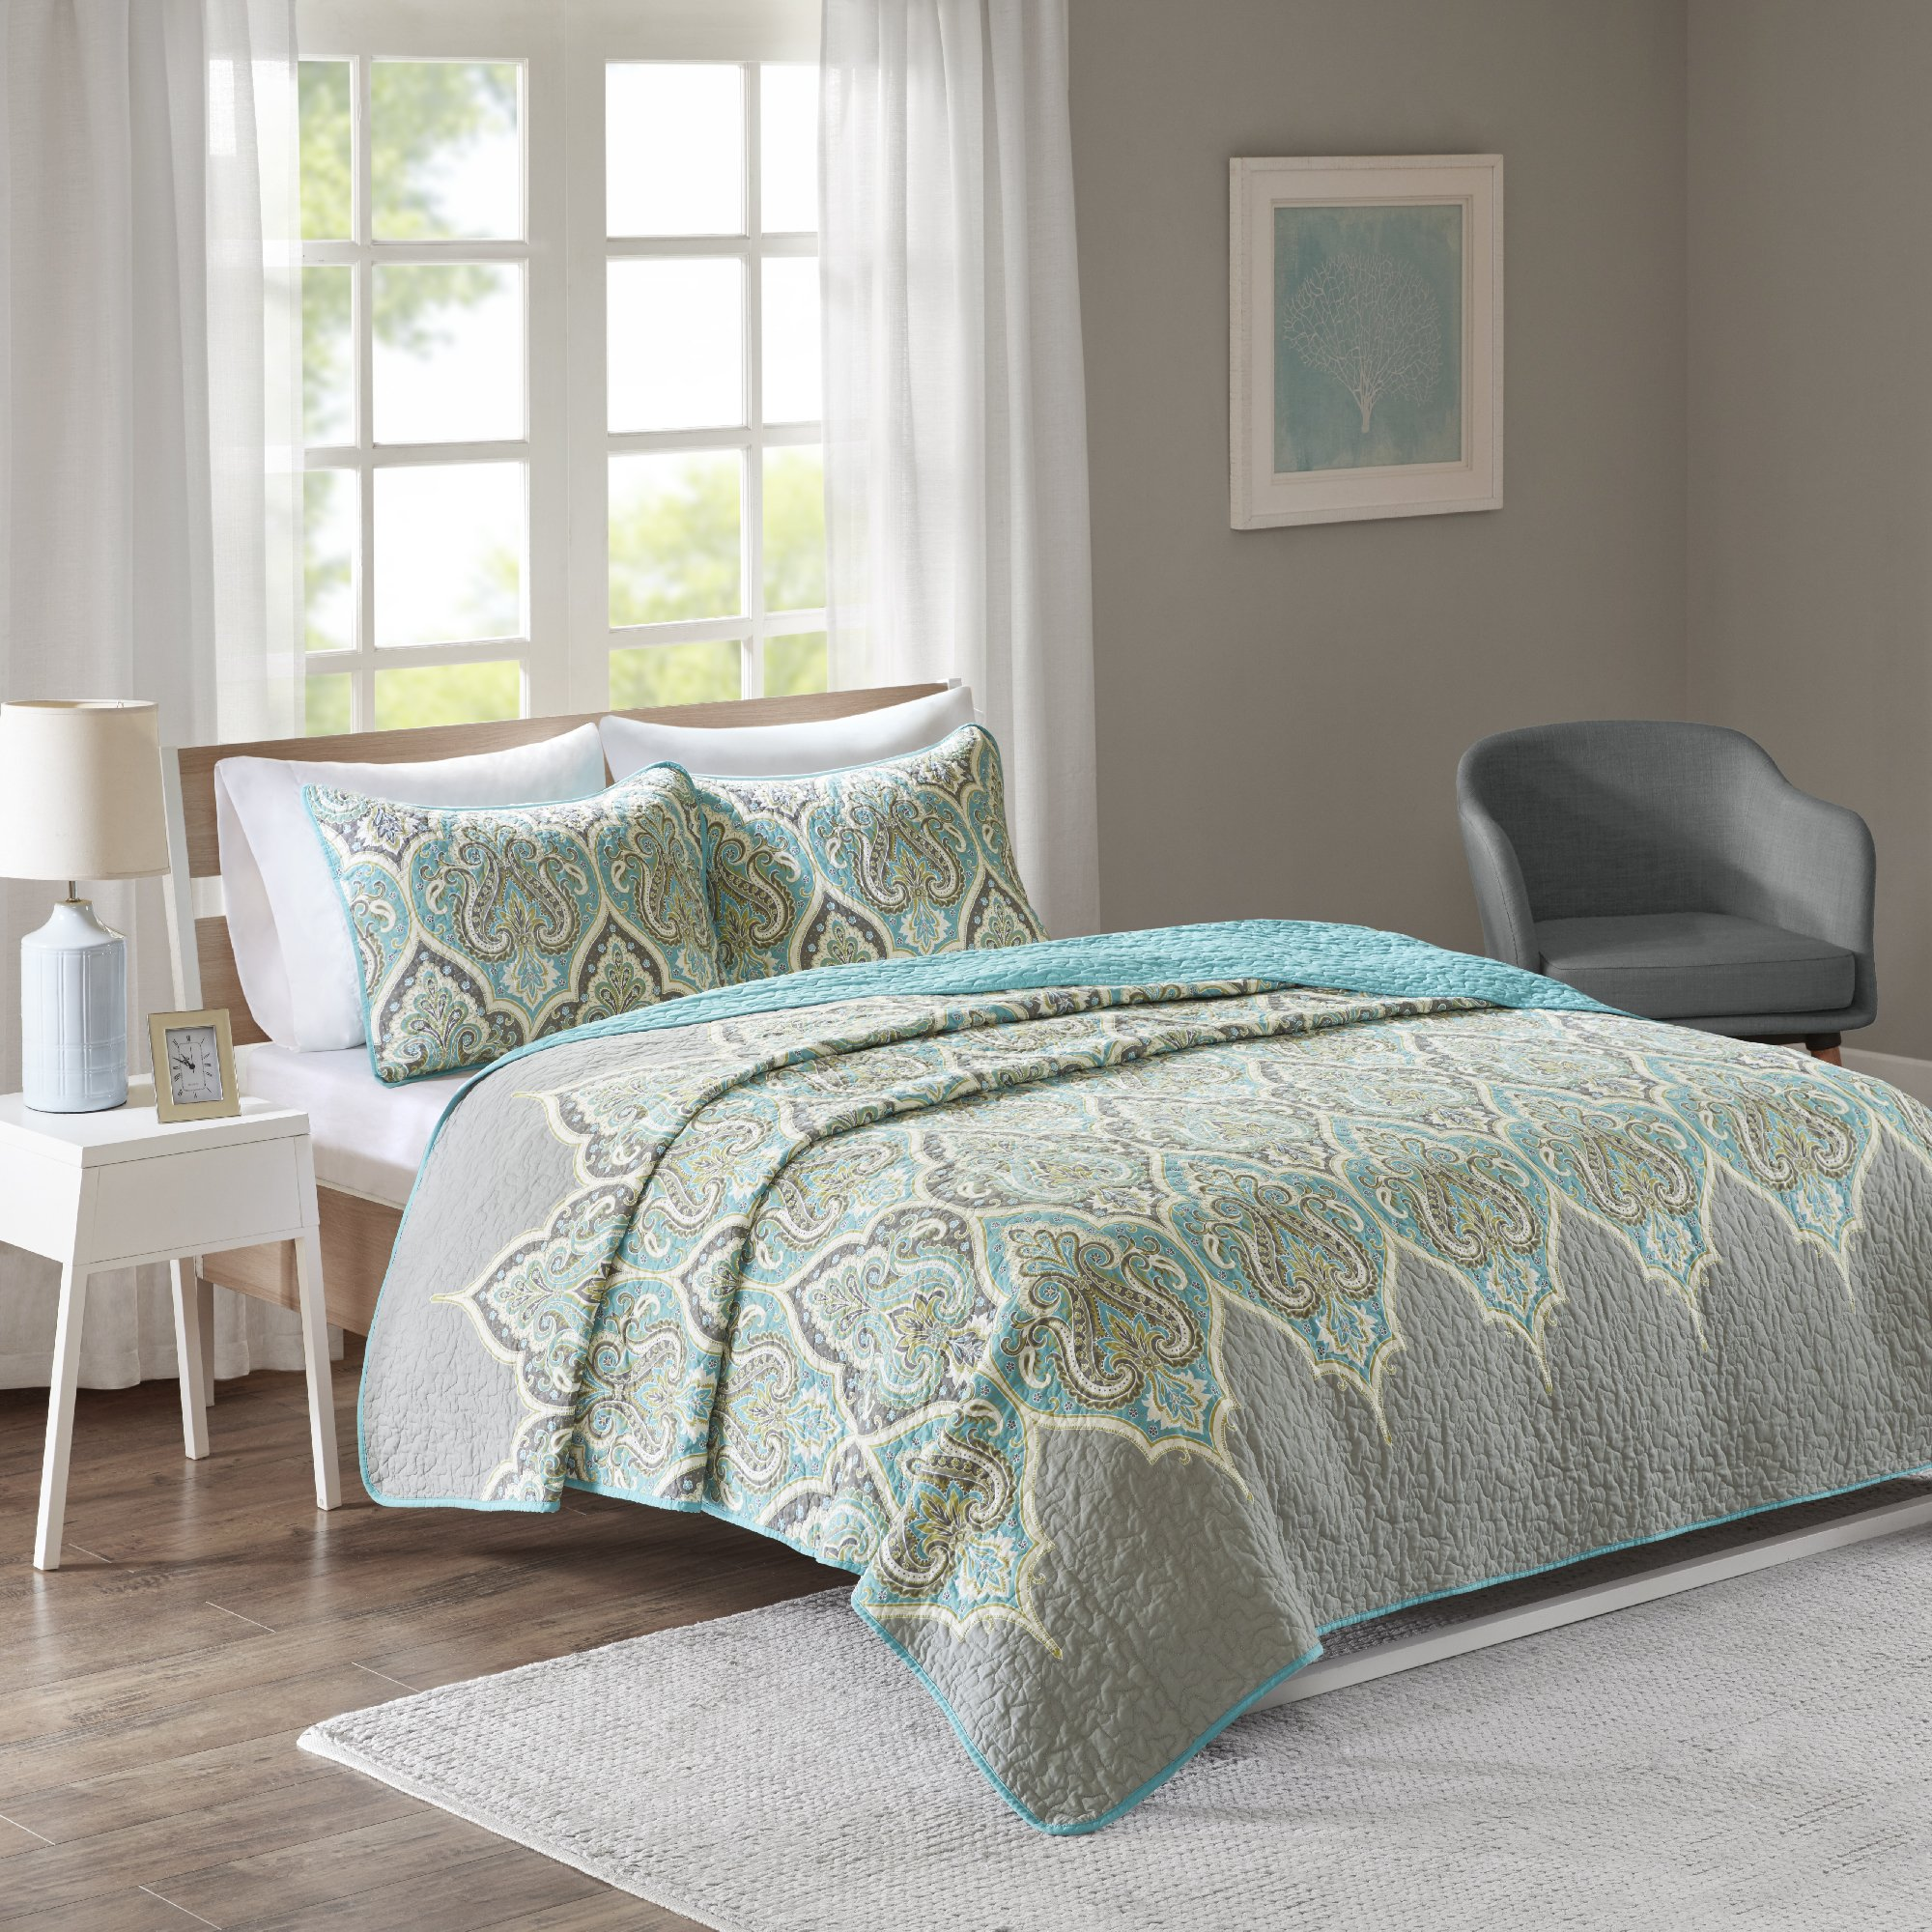 Comfort Spaces Mona Cotton Mini Quilt Set - 3 Piece - Paisley Pattern - Teal Grey - Full/Queen size, includes 1 Quilt, 2 Shams